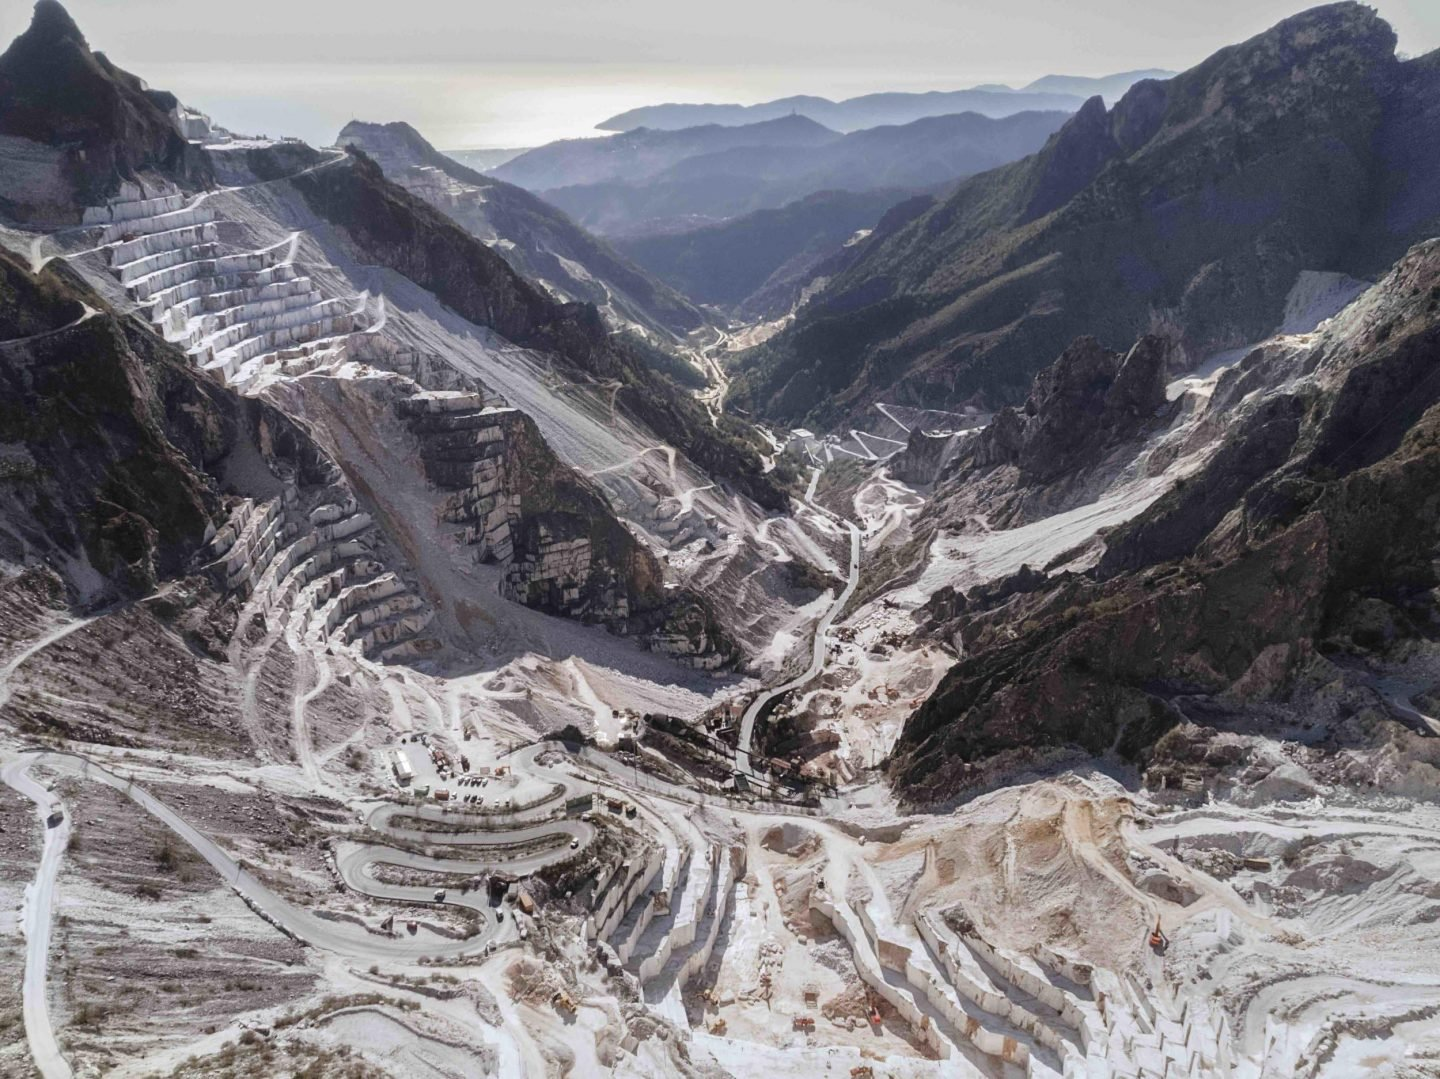 iGNANT-Photography-Luca-Locatelli-Marble-Quarries-Of-Italy-001